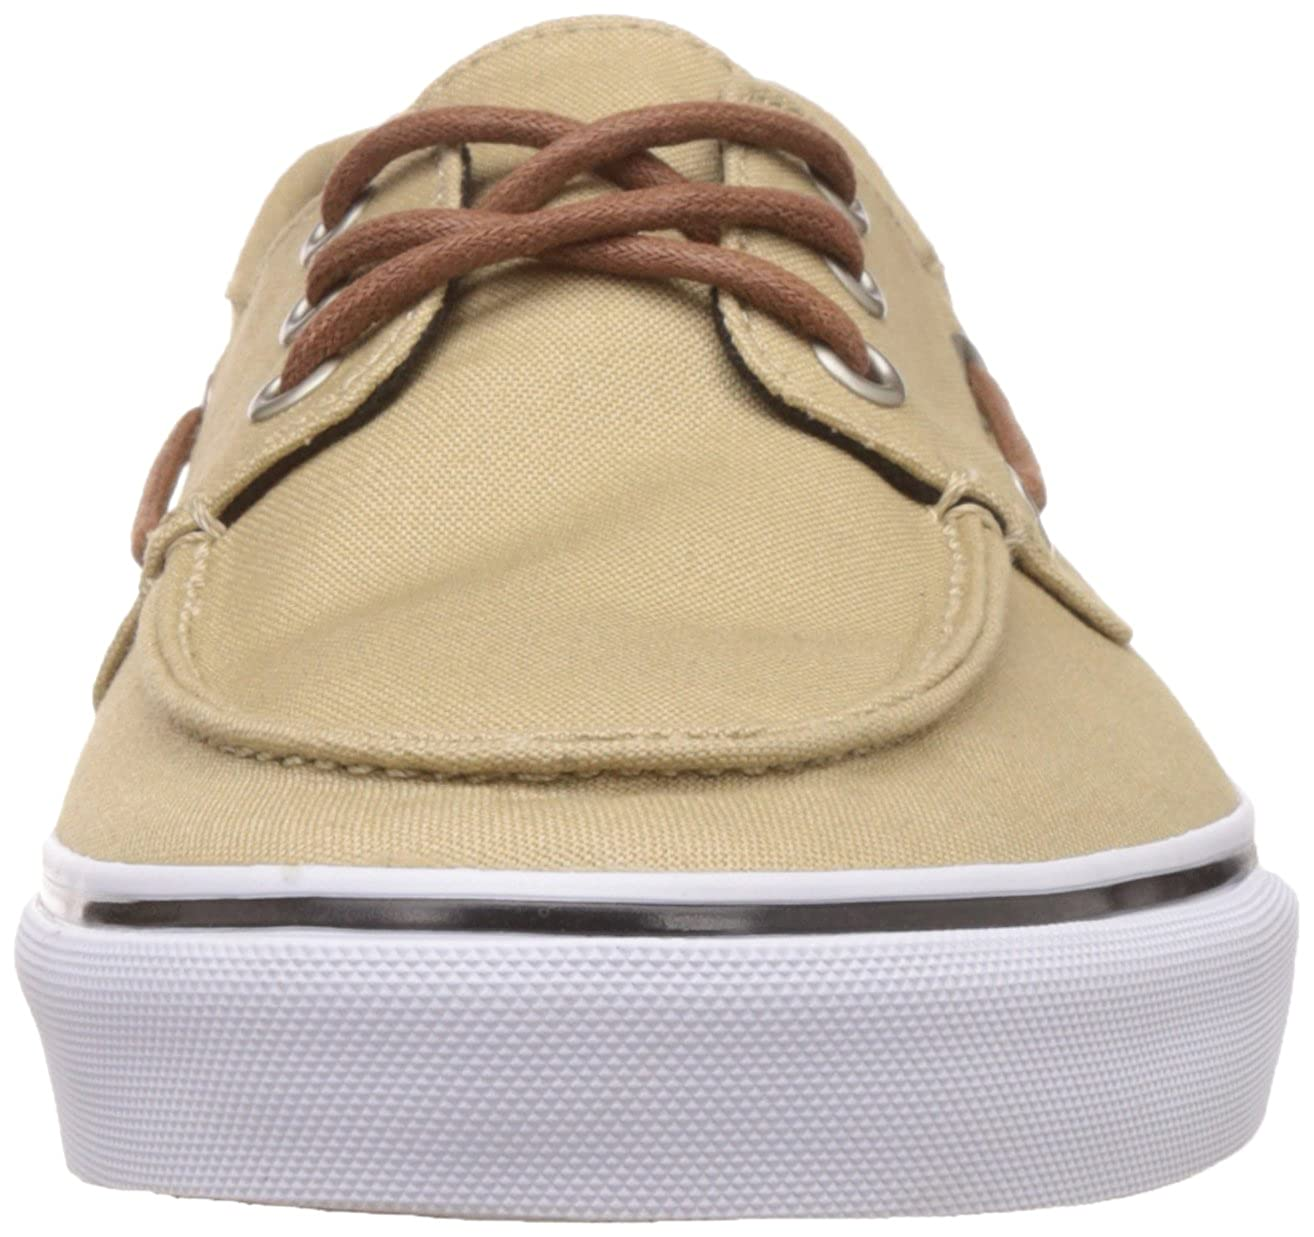 857556d039710a Vans Men s Chauffeur SF Sneakers  Buy Online at Low Prices in India -  Amazon.in